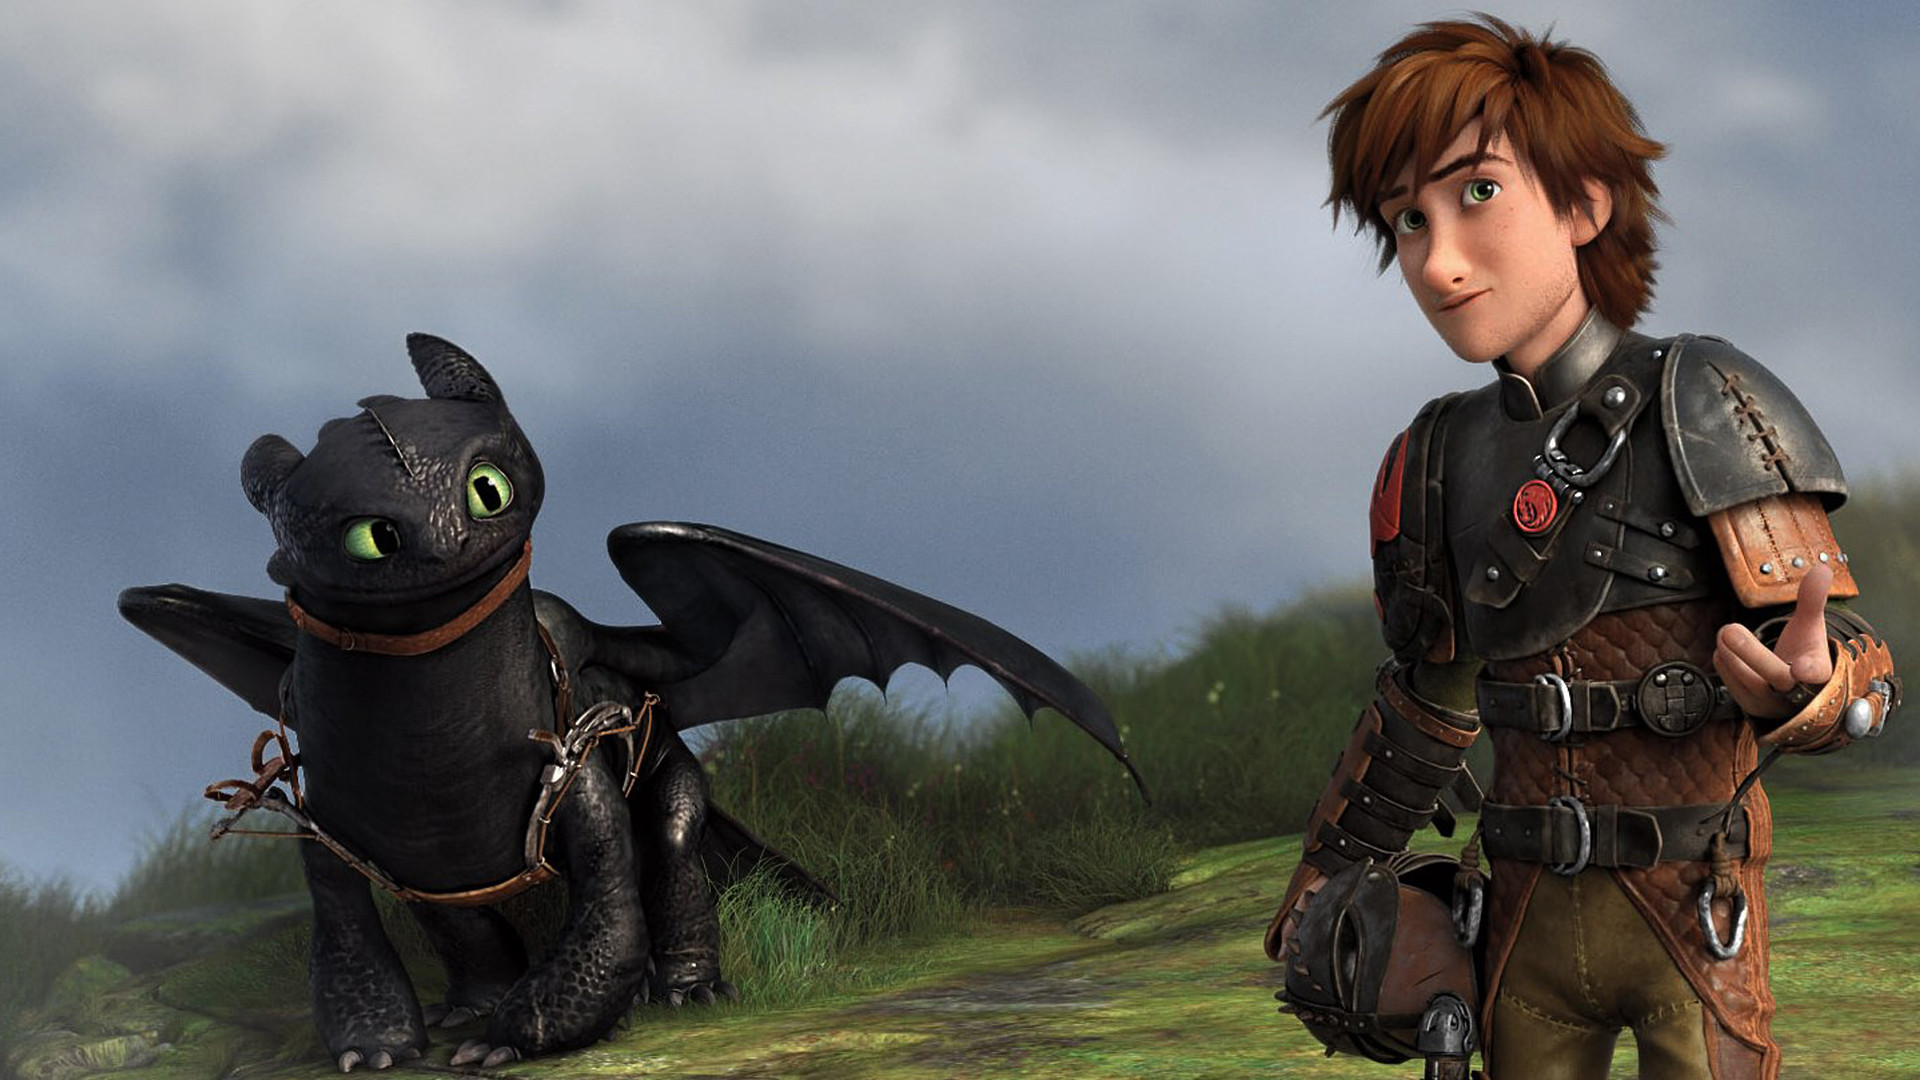 … 12 hd how to train your dragon movie wallpapers hdwallsource com …